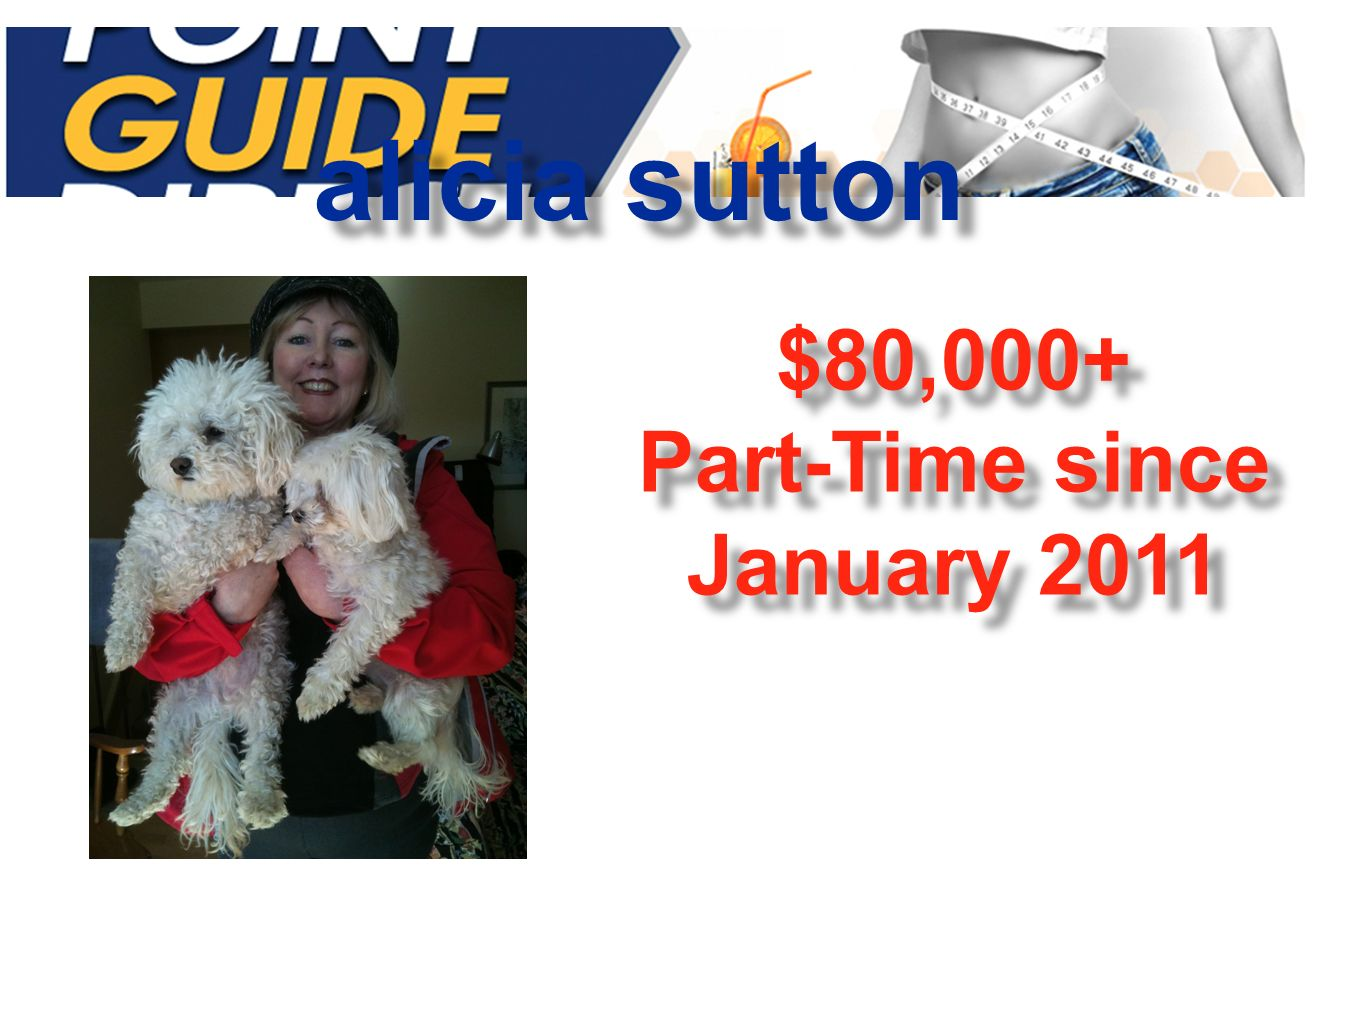 alicia sutton $80,000+ Part-Time since January 2011 $80,000+ Part-Time since January 2011